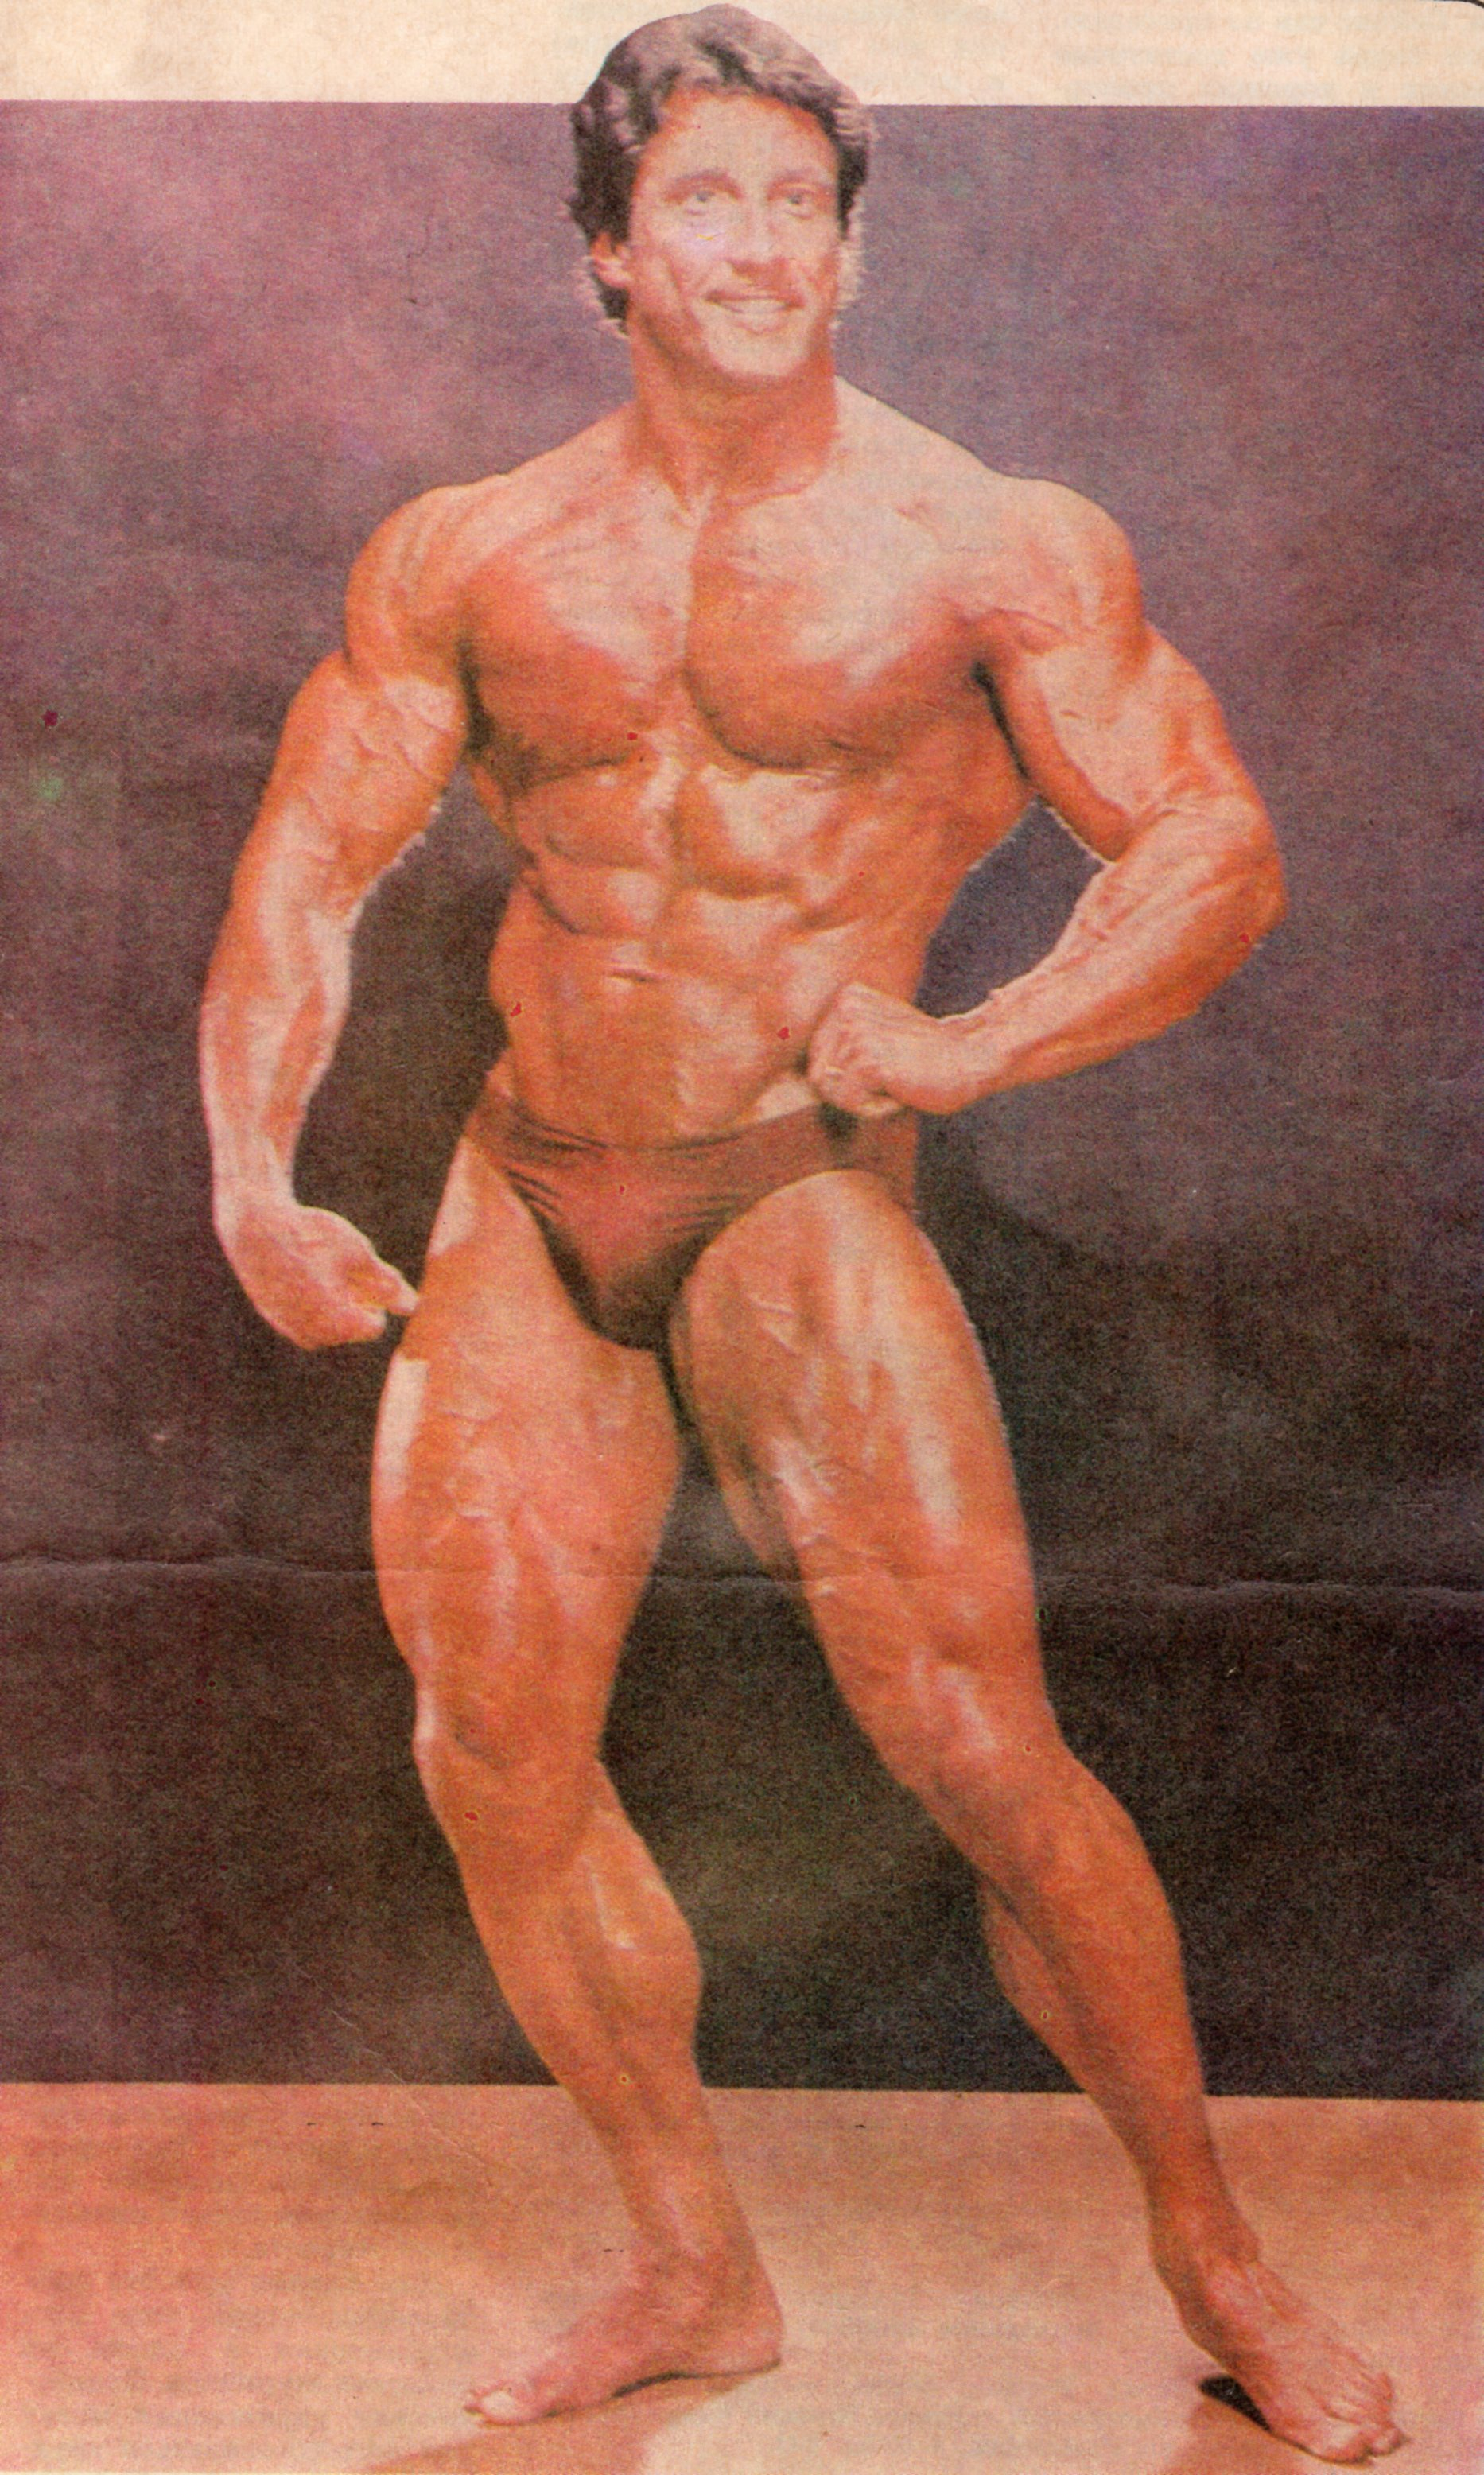 Frank Zane photo 5 of 8 pics, wallpaper - photo #598103